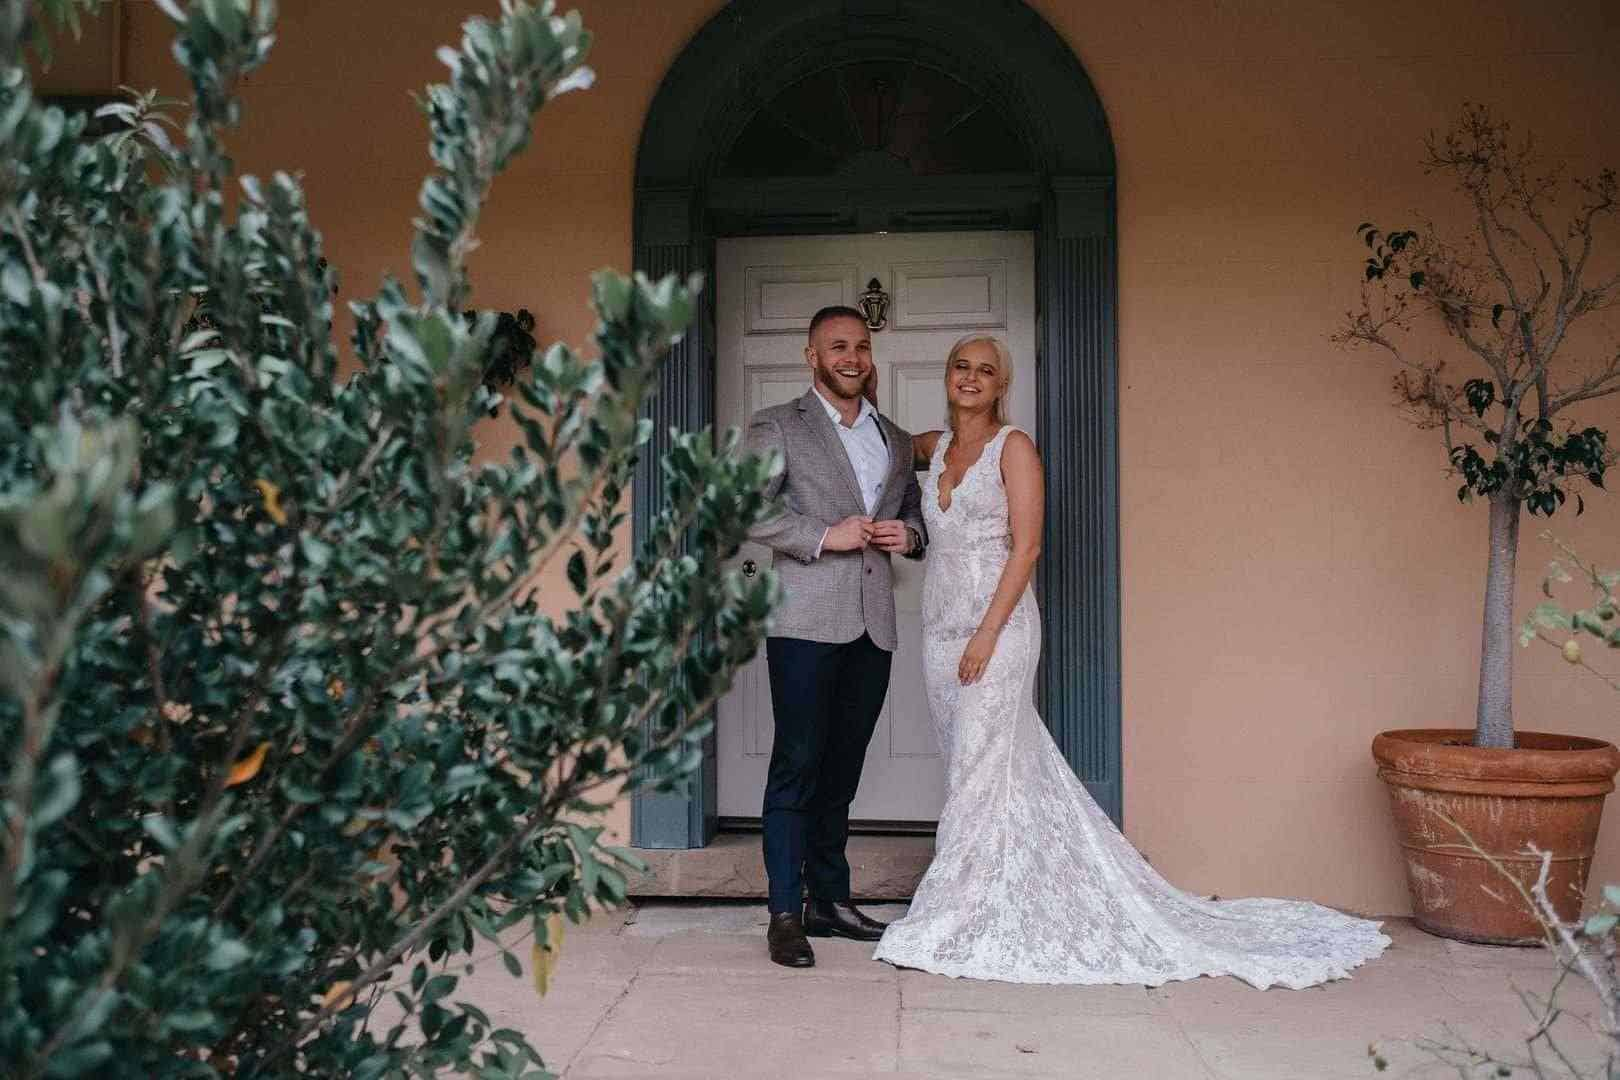 Happy bride and groom in front of a door